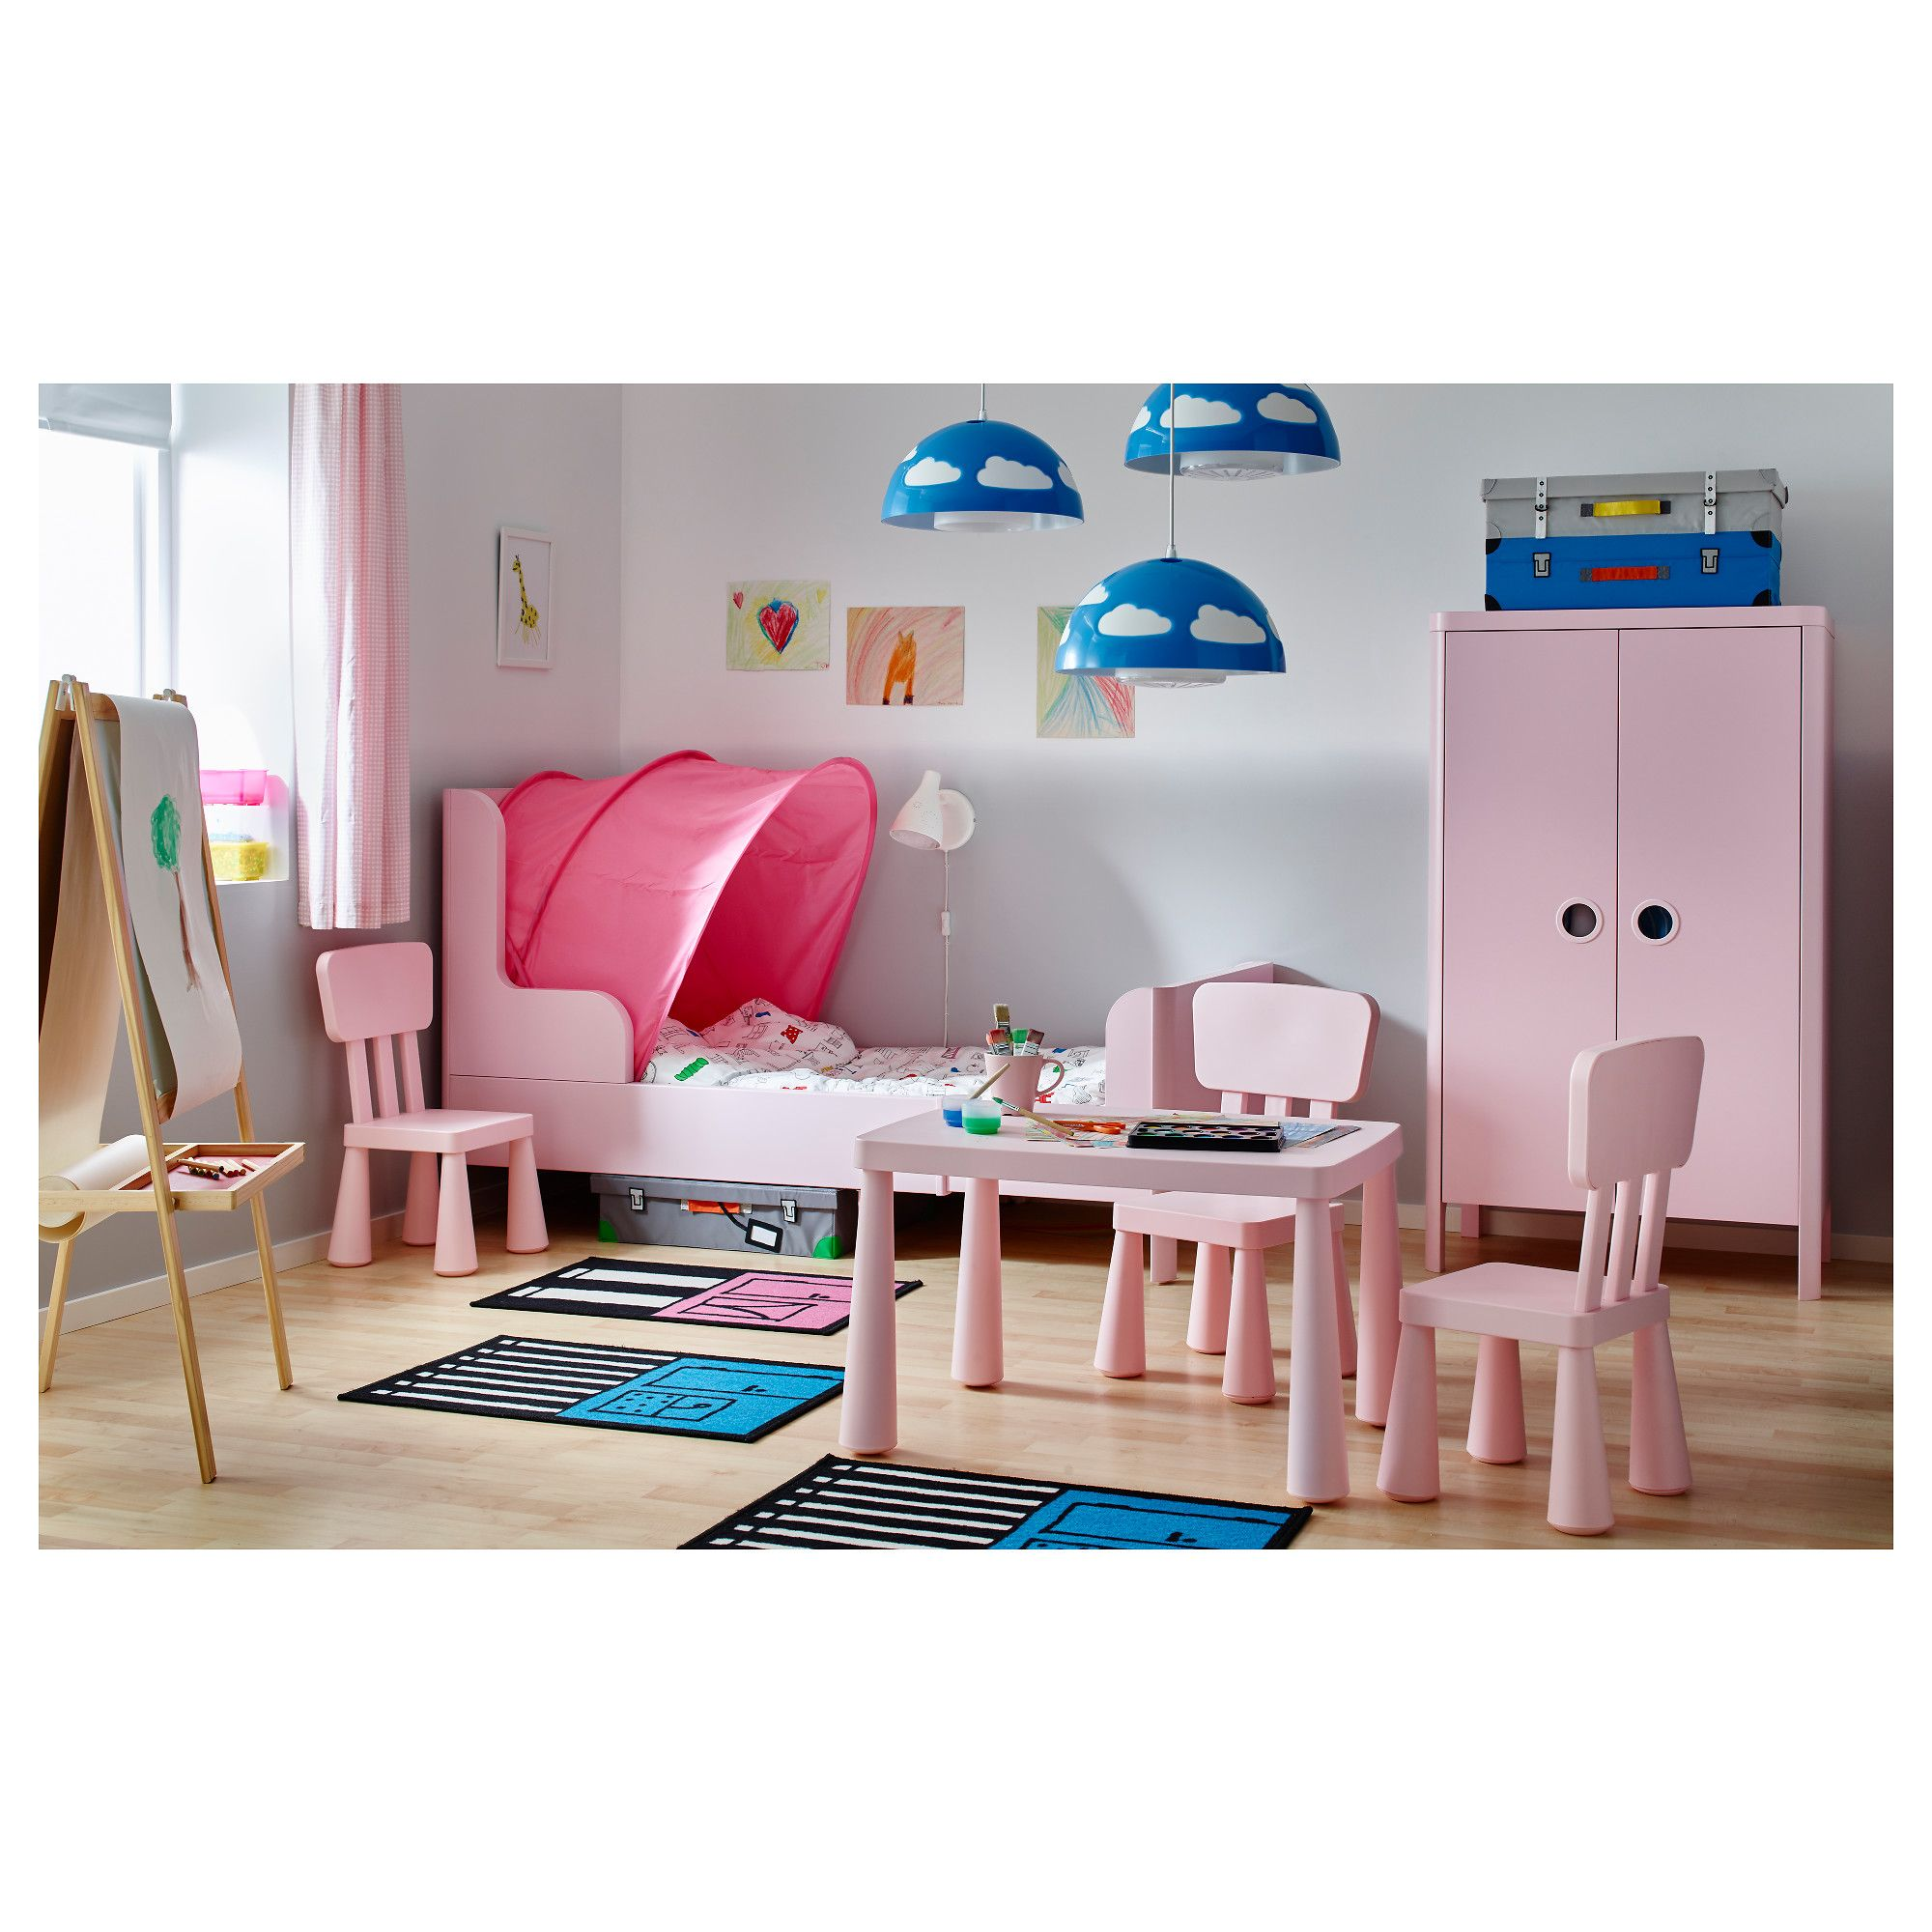 BUSUNGE Extendable bed Light pink 80x200 cm | Lights, Toddler girl ...